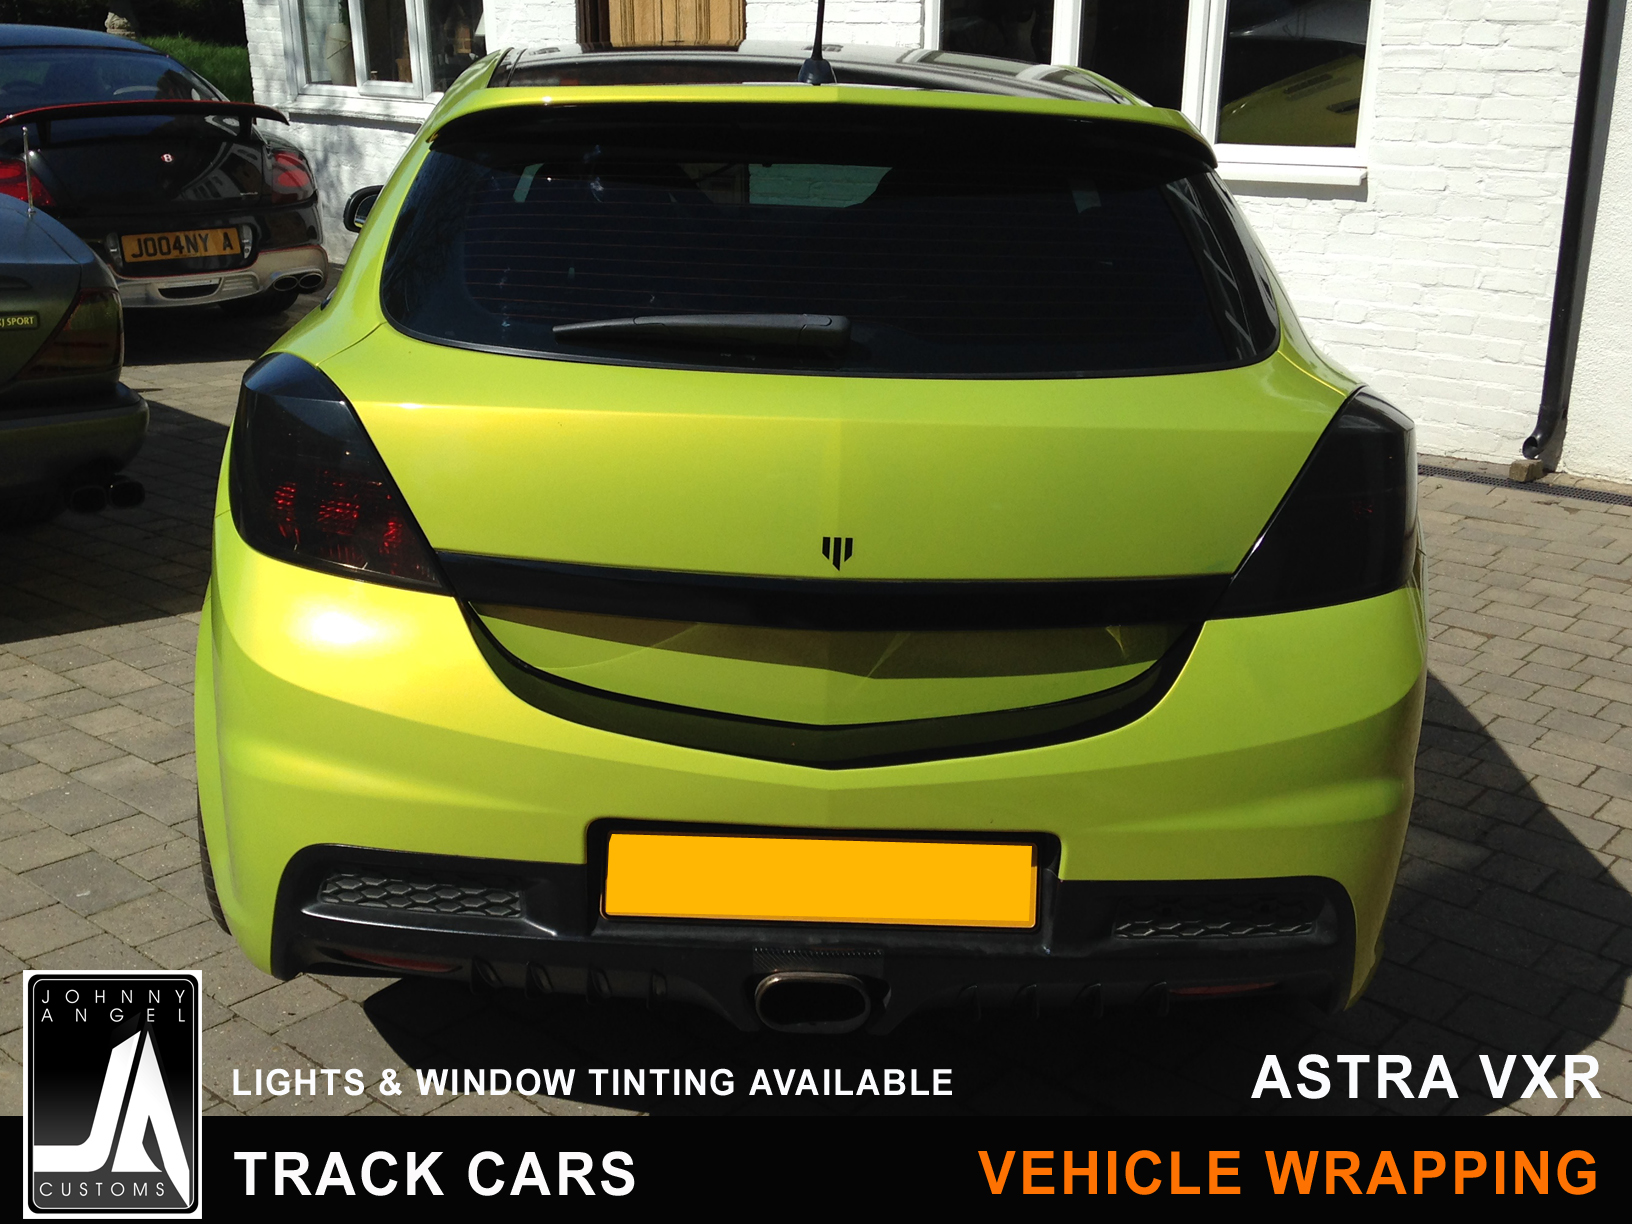 Johnny Angel Customs Track Cars Vehicle Wrapping Astra VXR p4